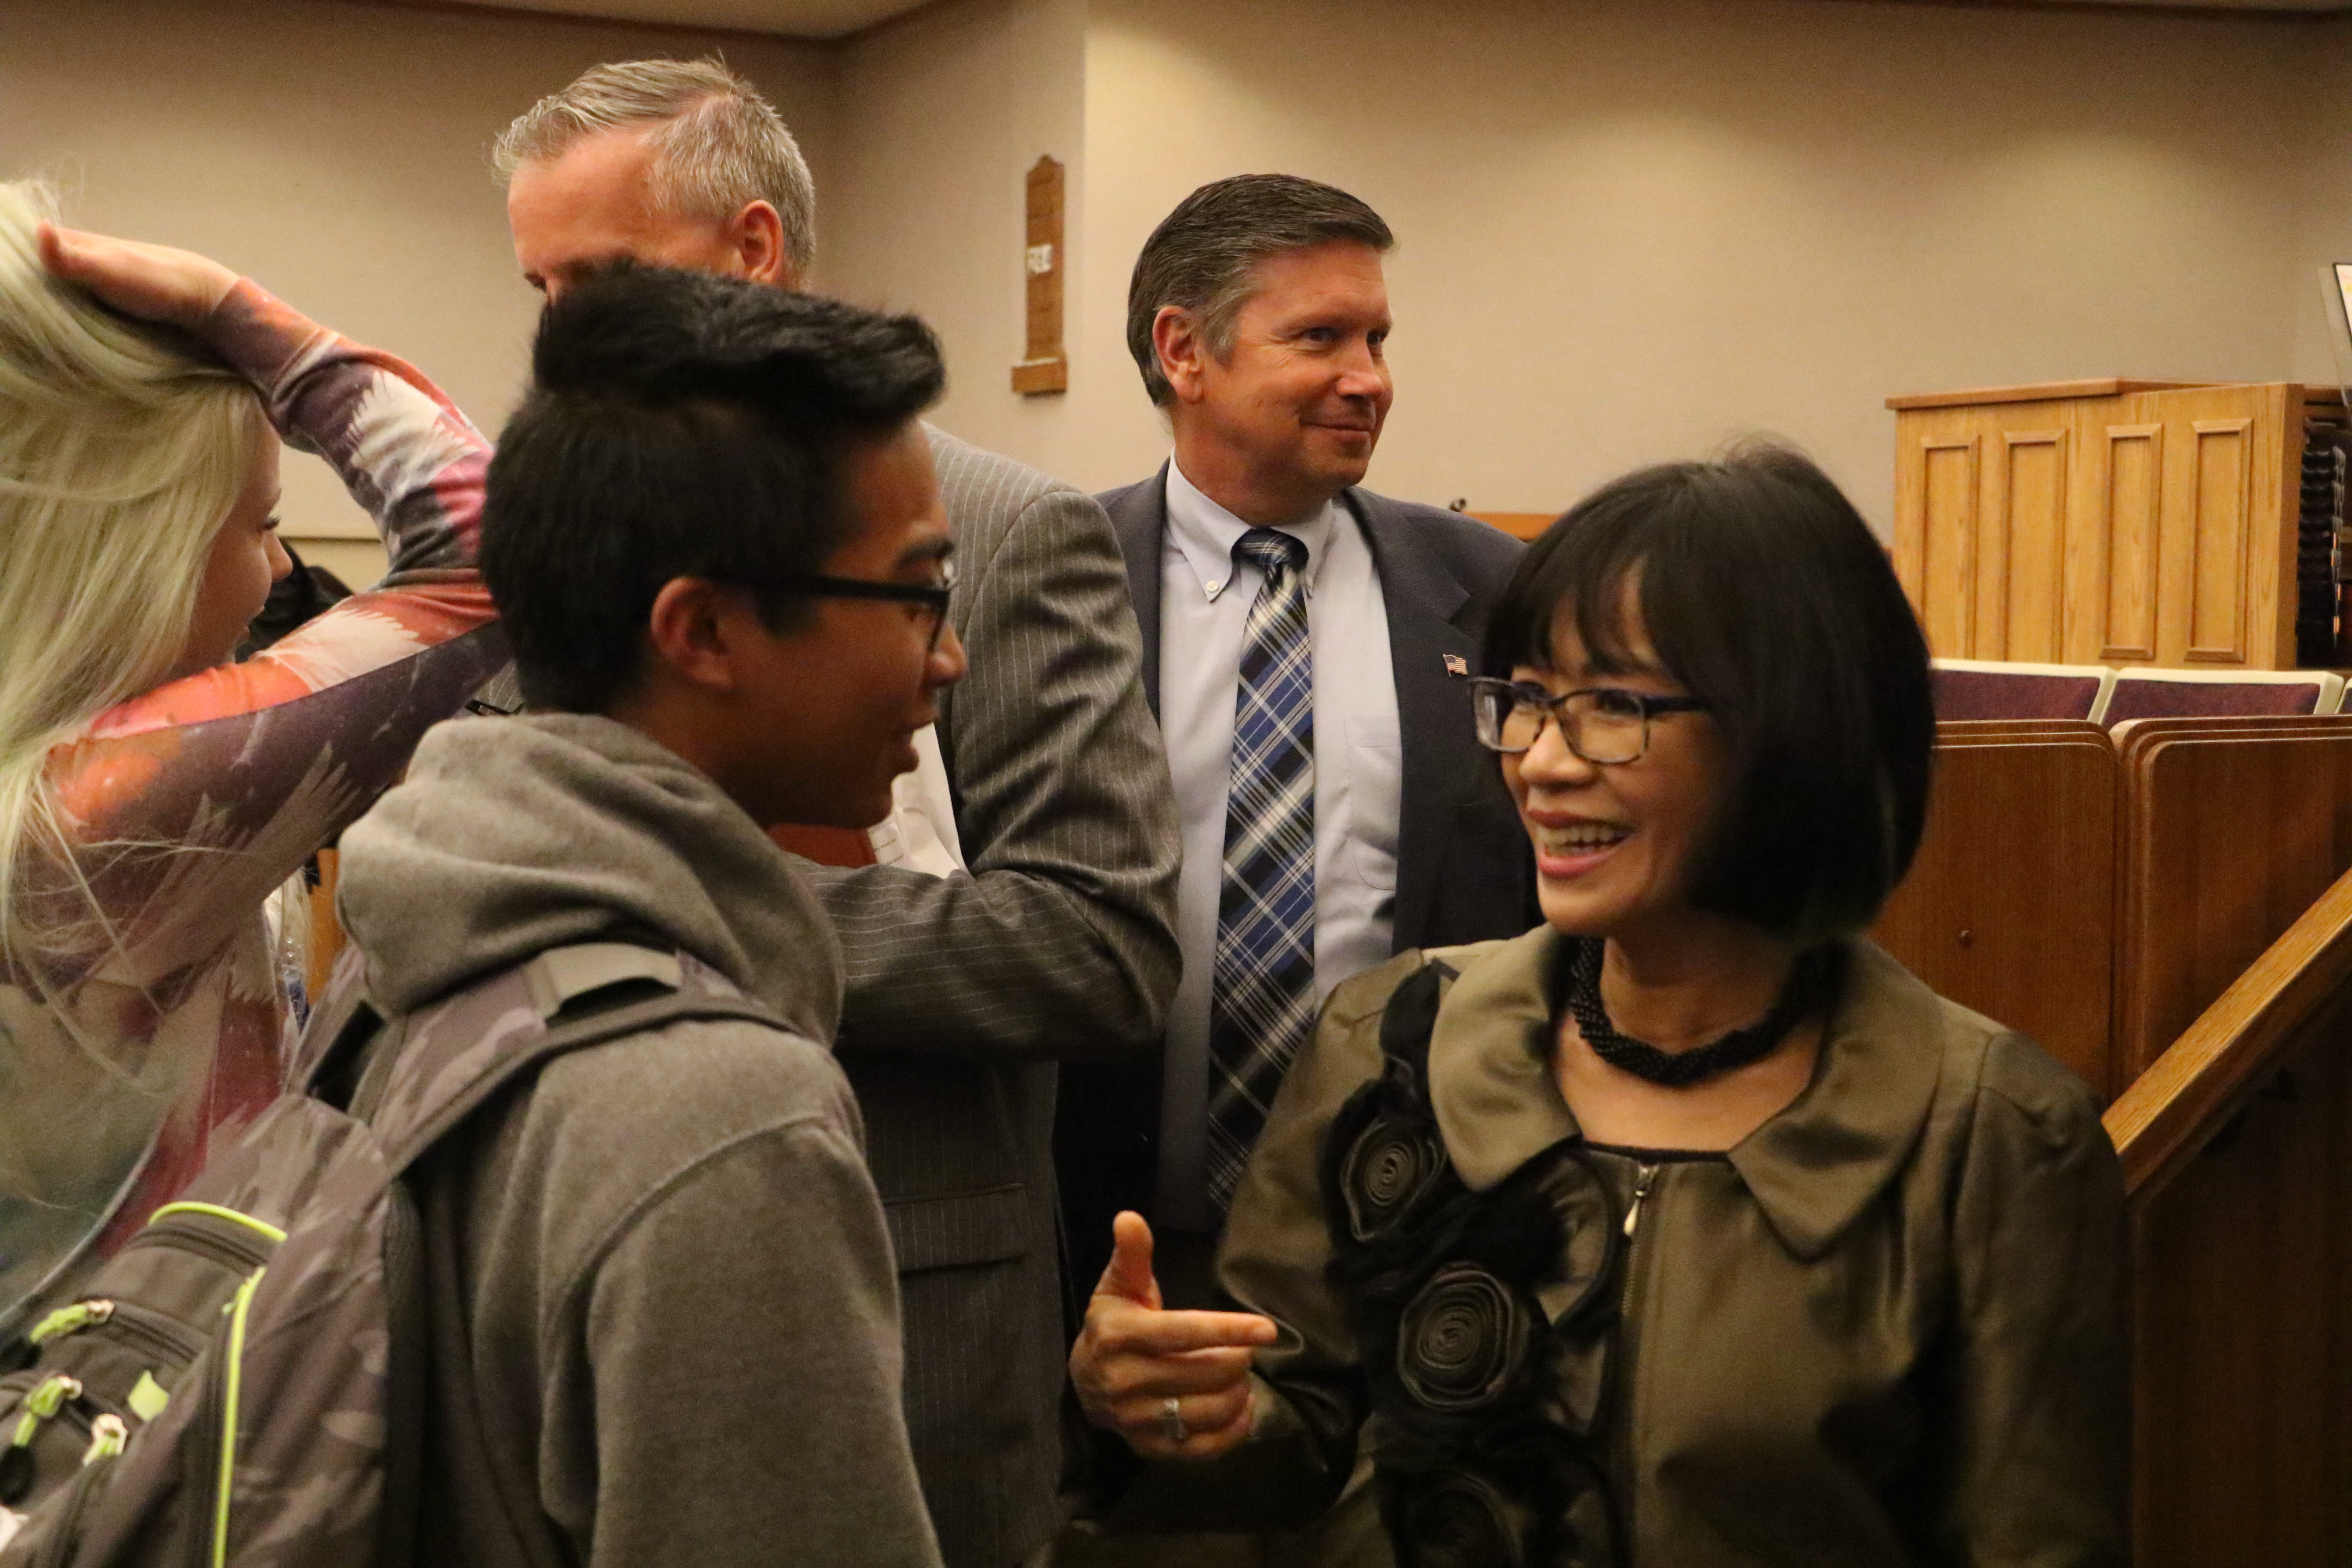 UVU President Astrid S. Tuminez speaks with students following a devotional with President M. Russell Ballard on Friday, Sept. 20, 2019.